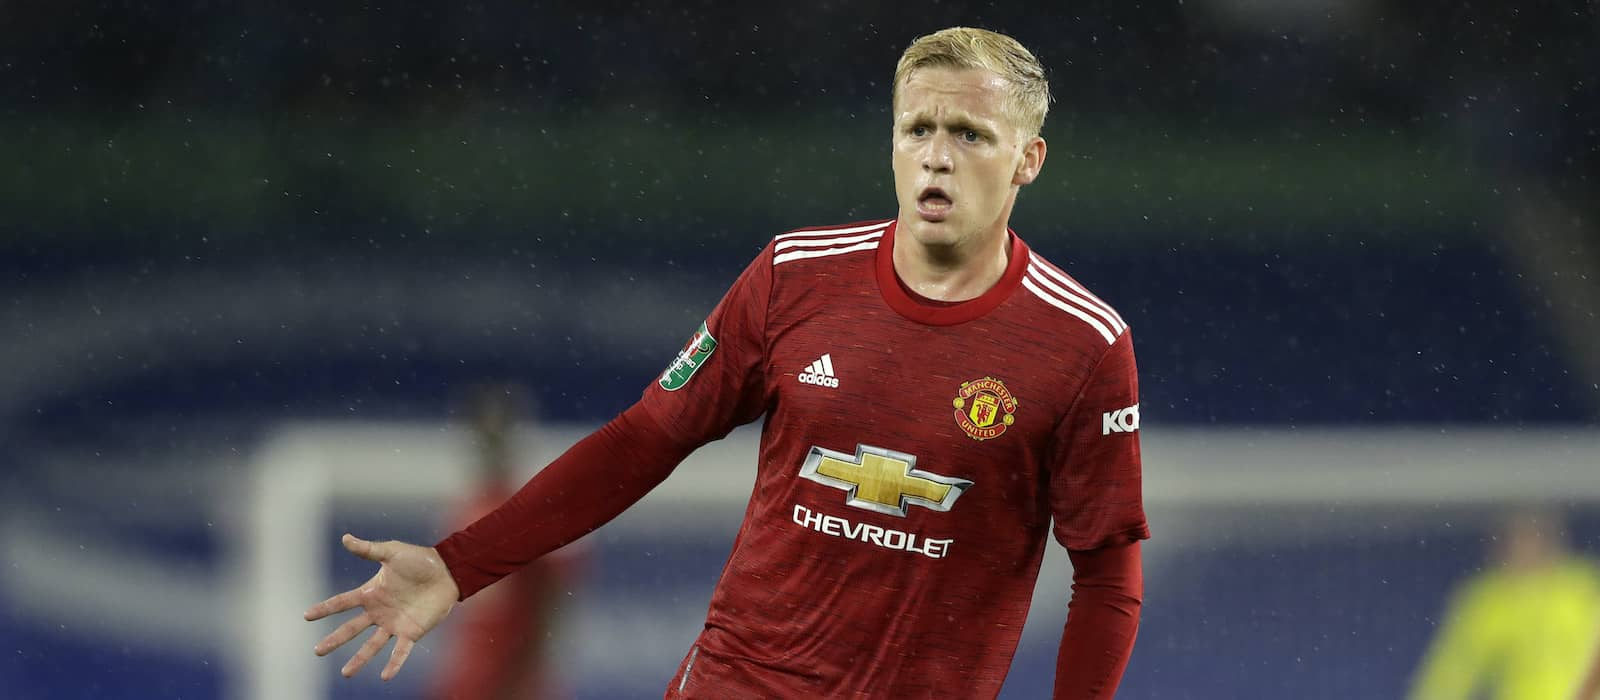 Manchester United fans disappointed by Donny van de Beek omission